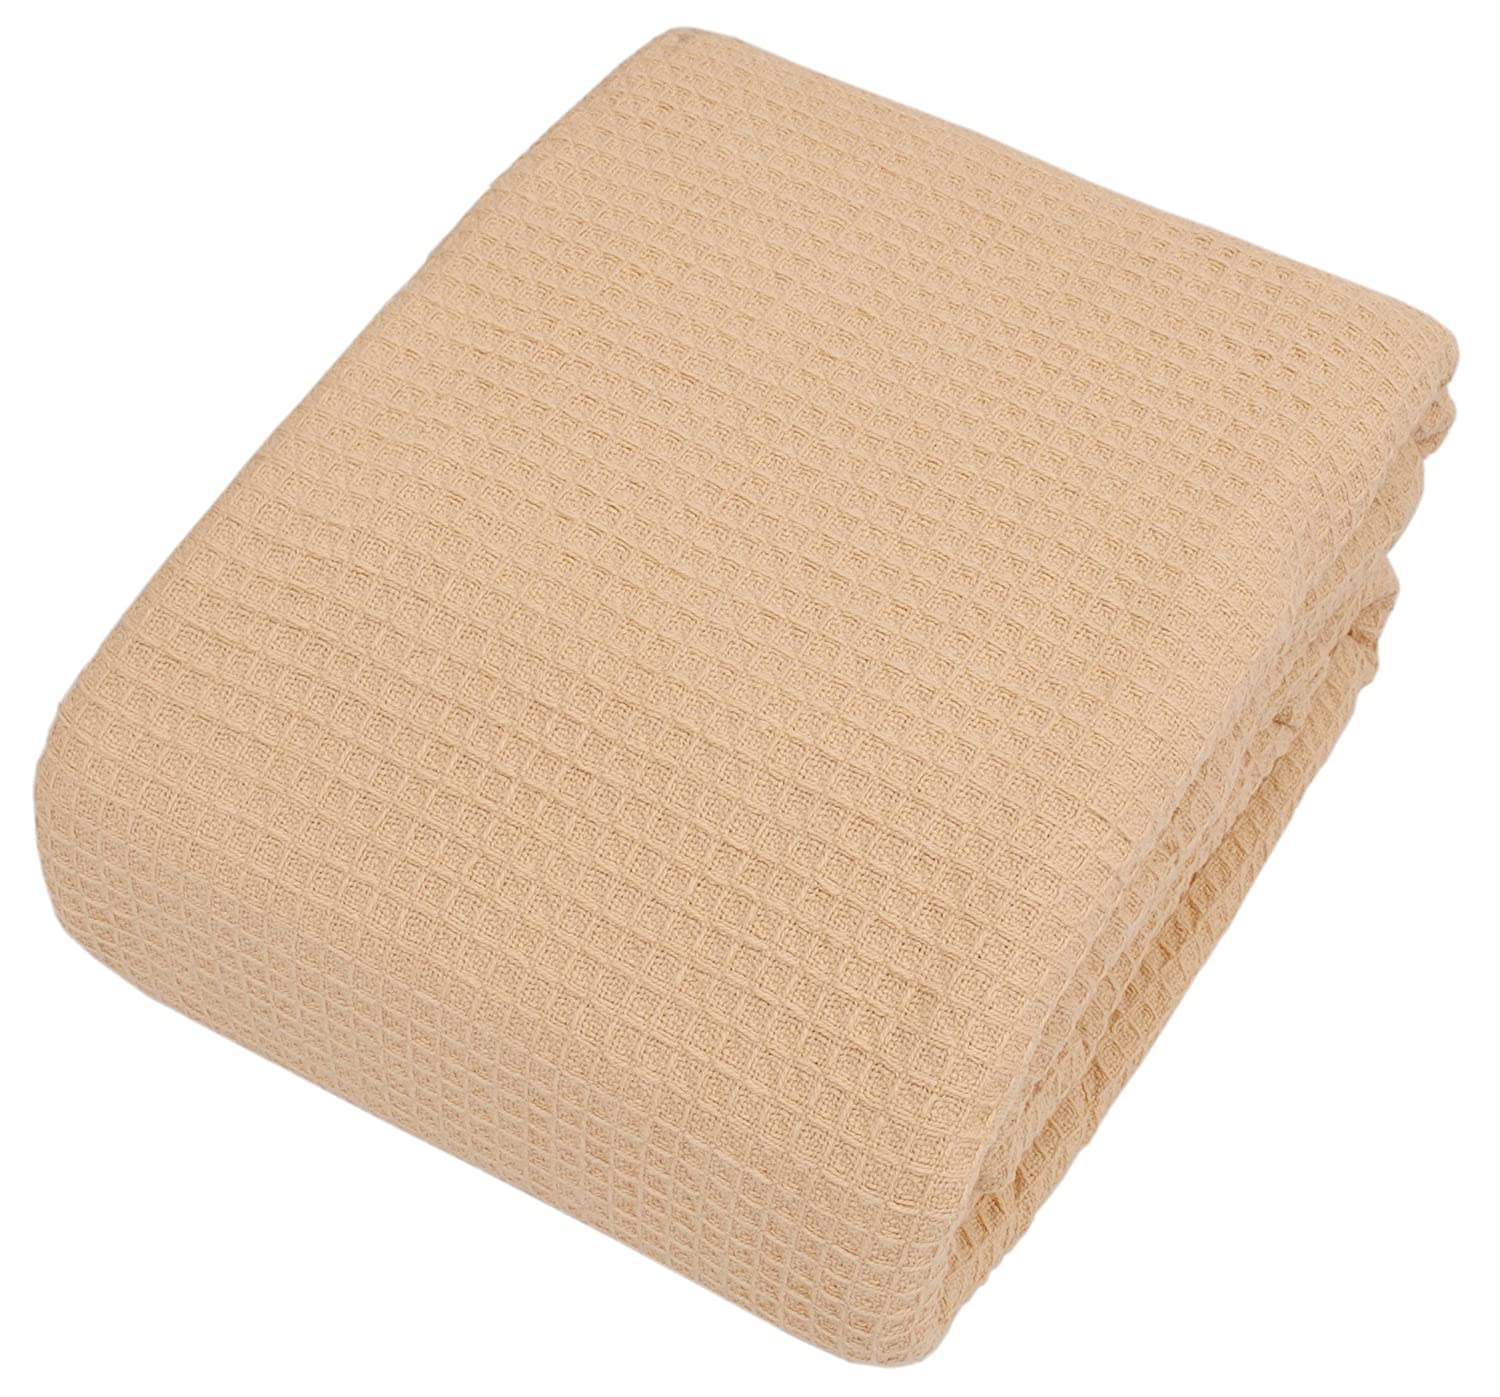 "TreeWool, Cotton Throw Blanket Lightweight Easy Care Soft Comfortable and Warm (Twin - 66"" x 90"", Waffle Weave, Beige)"